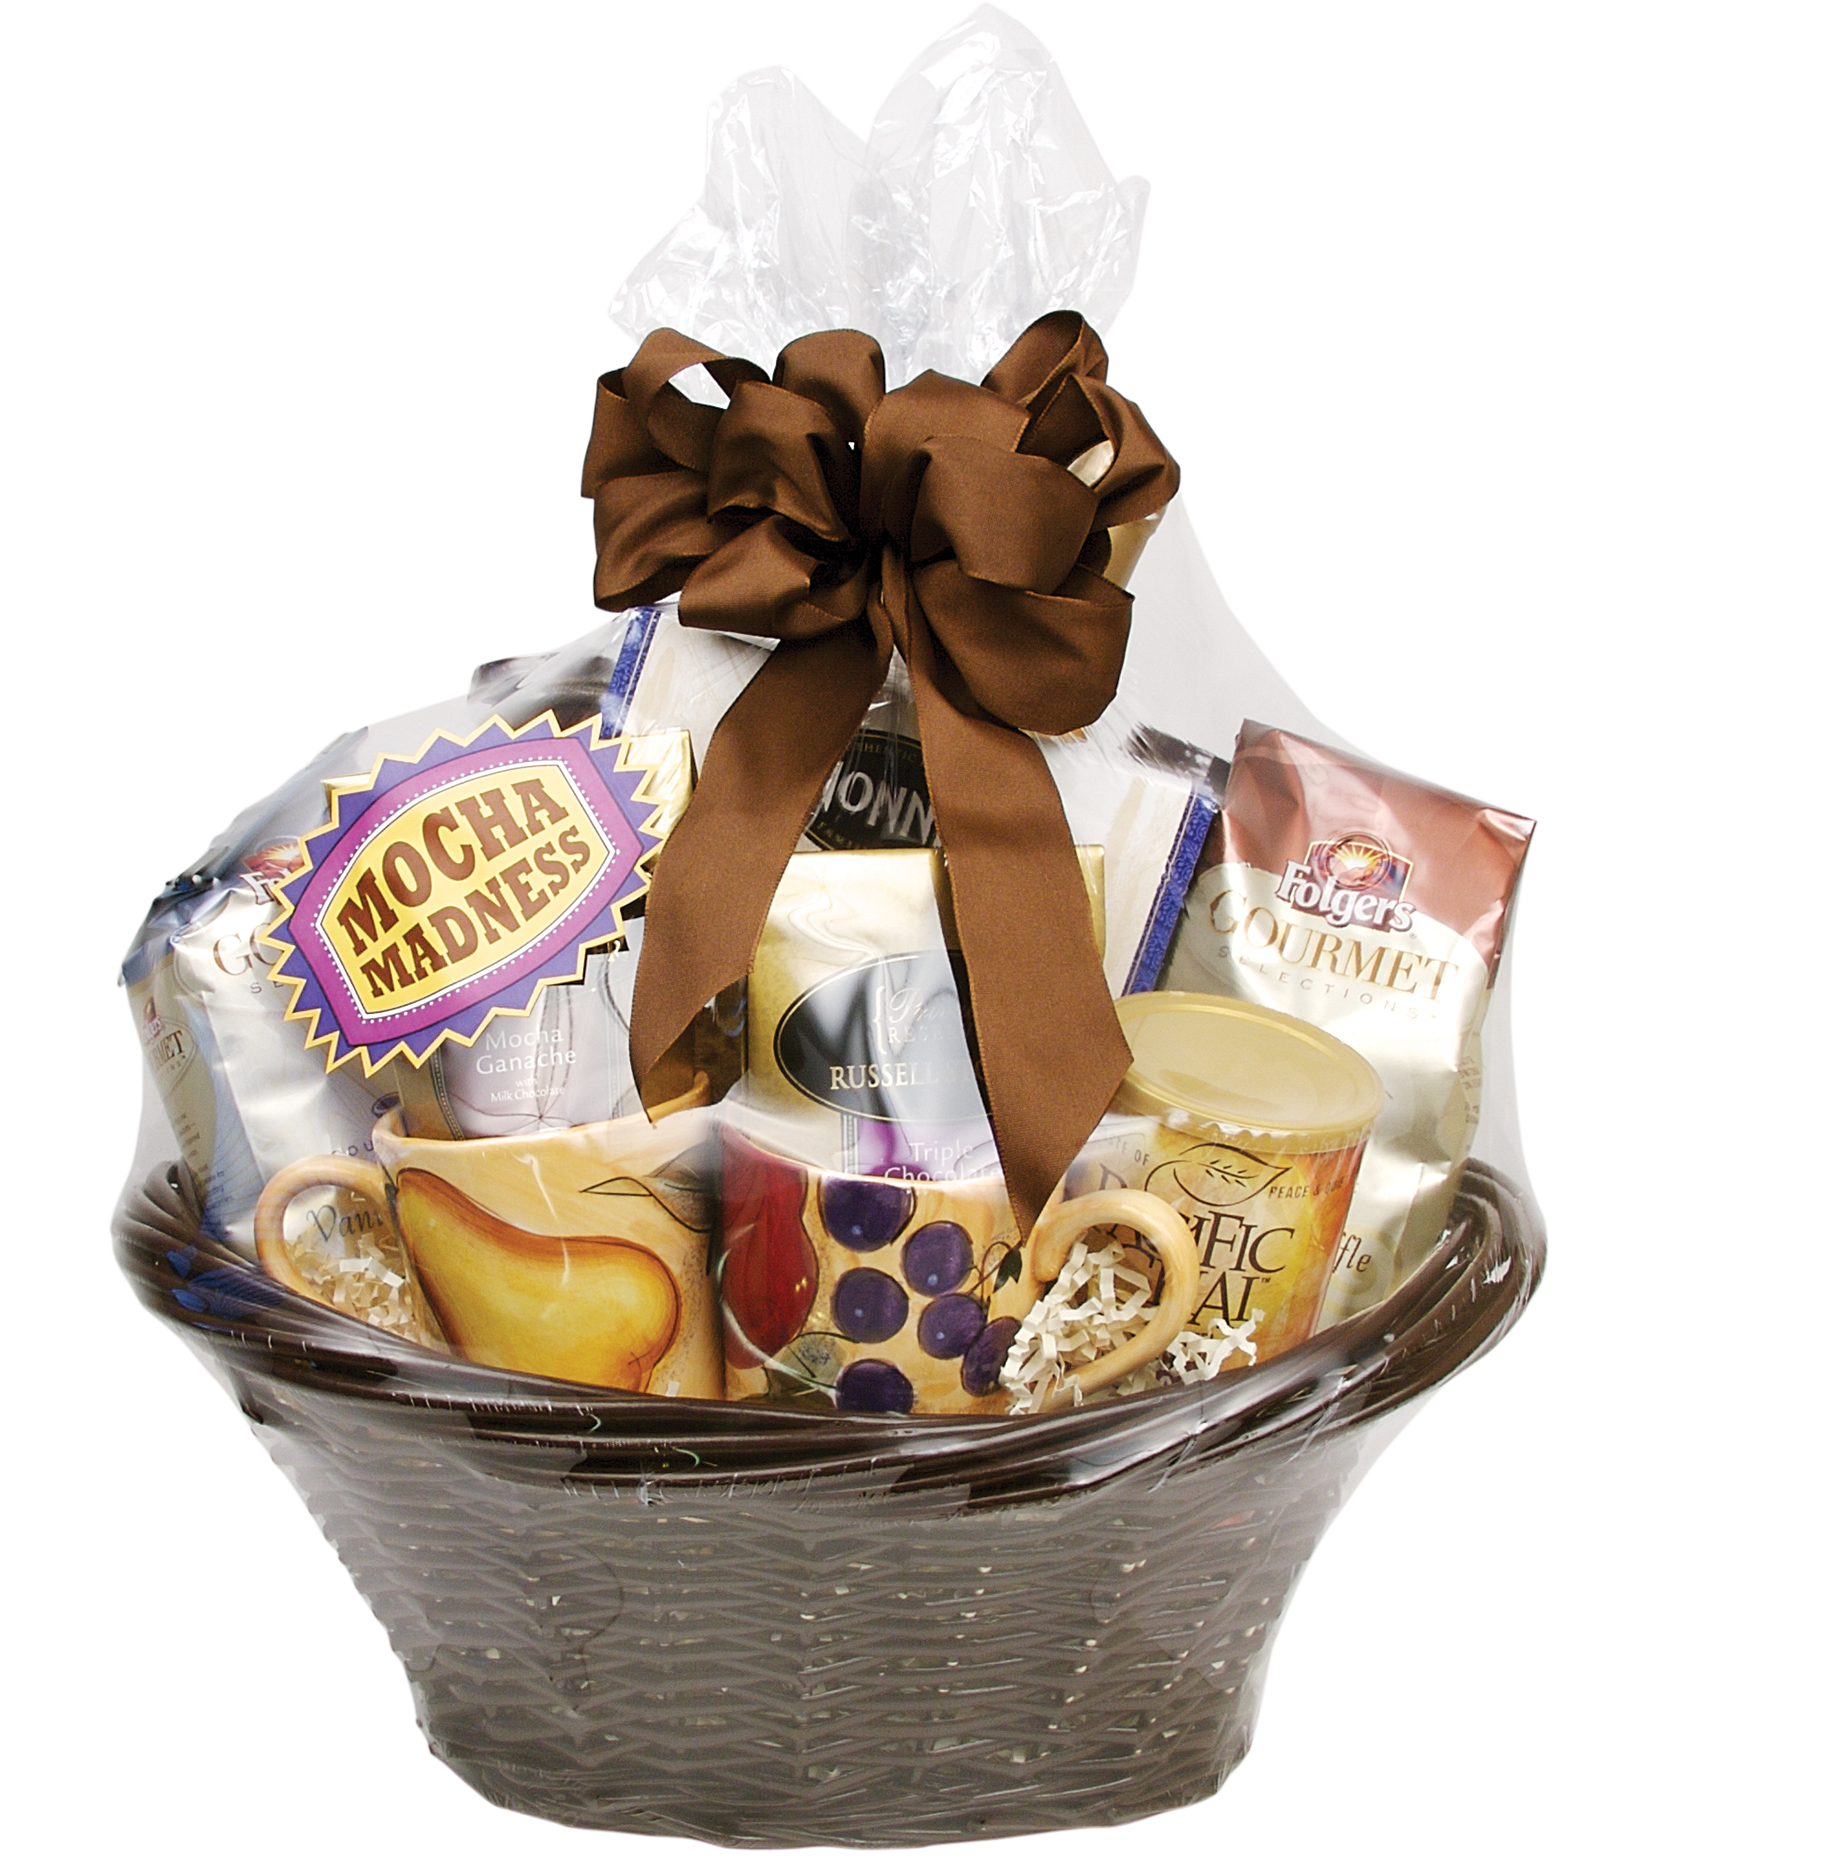 Shrink Wrap Basket